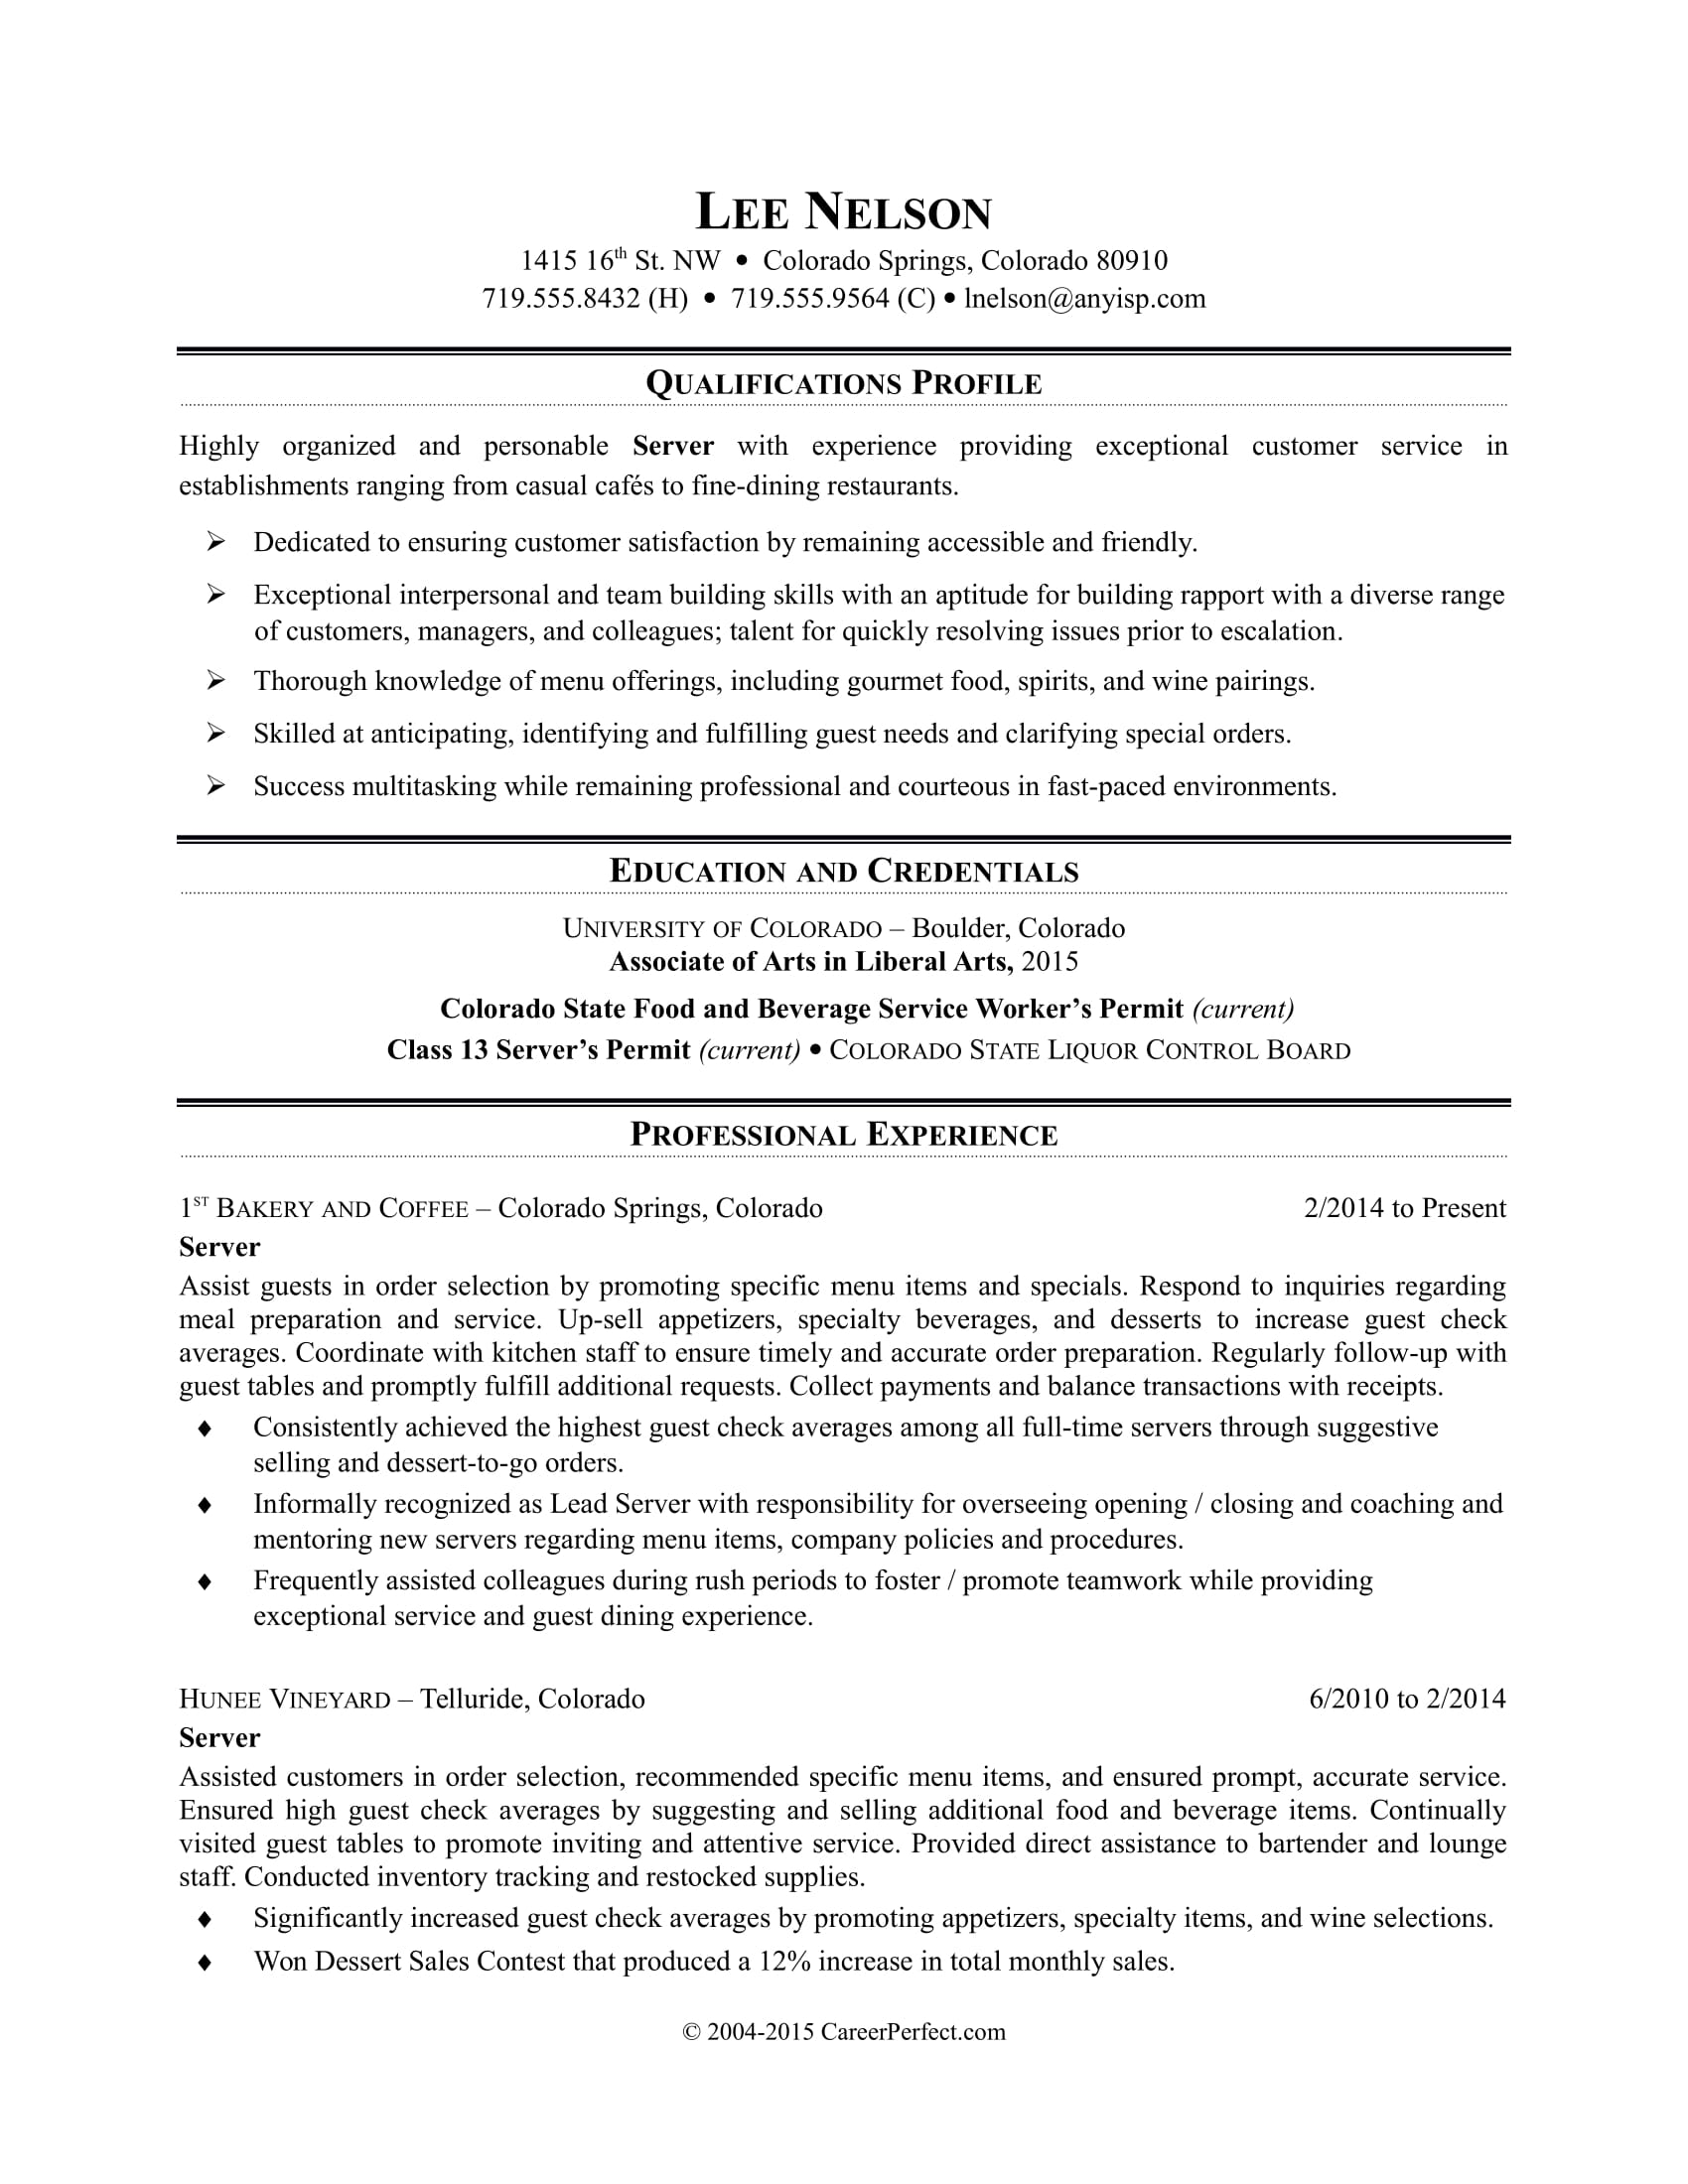 Restaurant server resume sample monster sample resume for a restaurant server altavistaventures Images